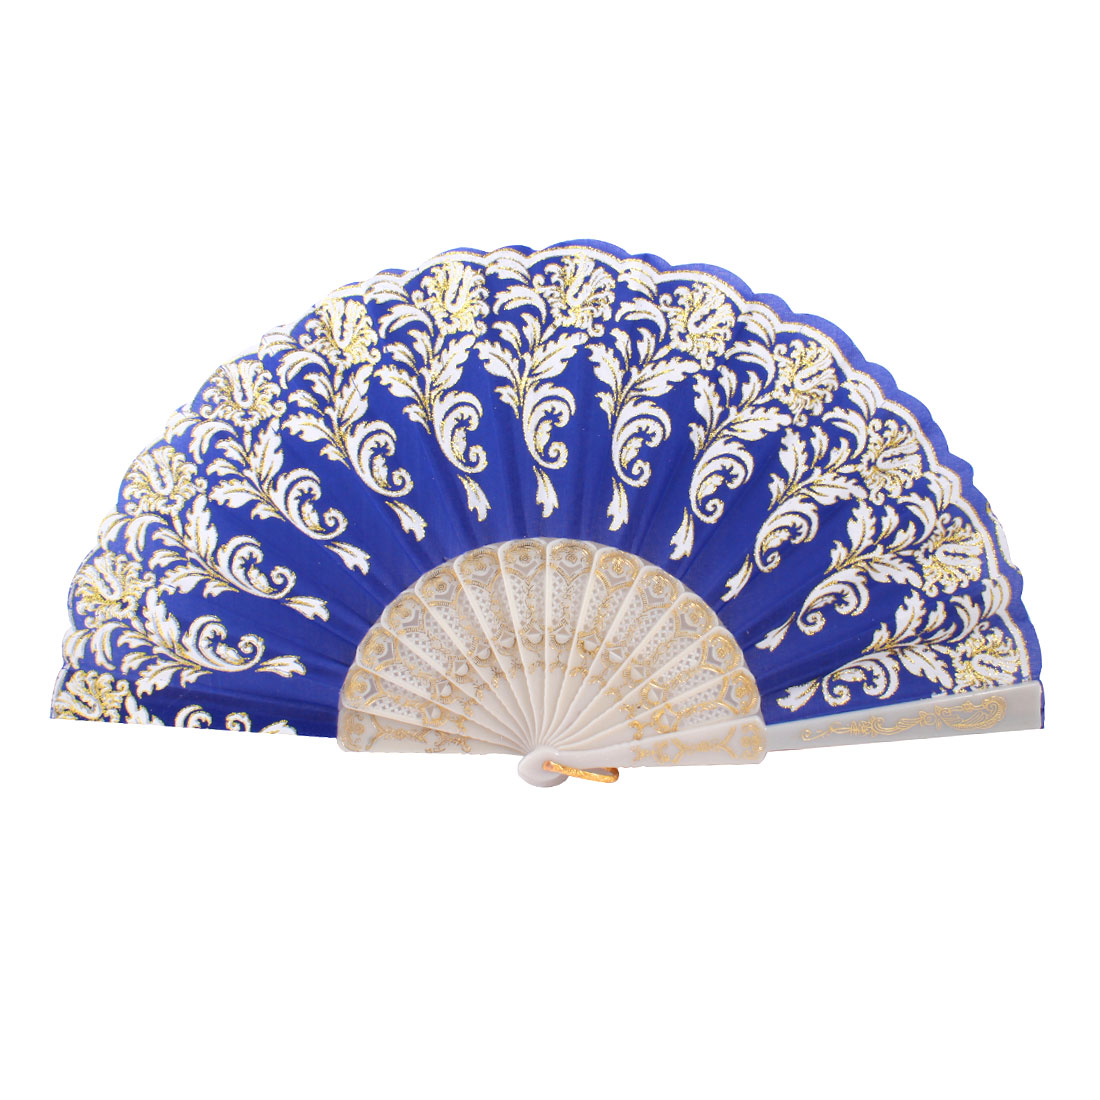 Plastic Frame Gold Tone Glittery Powder Decor Floral Pattern Foldable Hand Fan Blue White